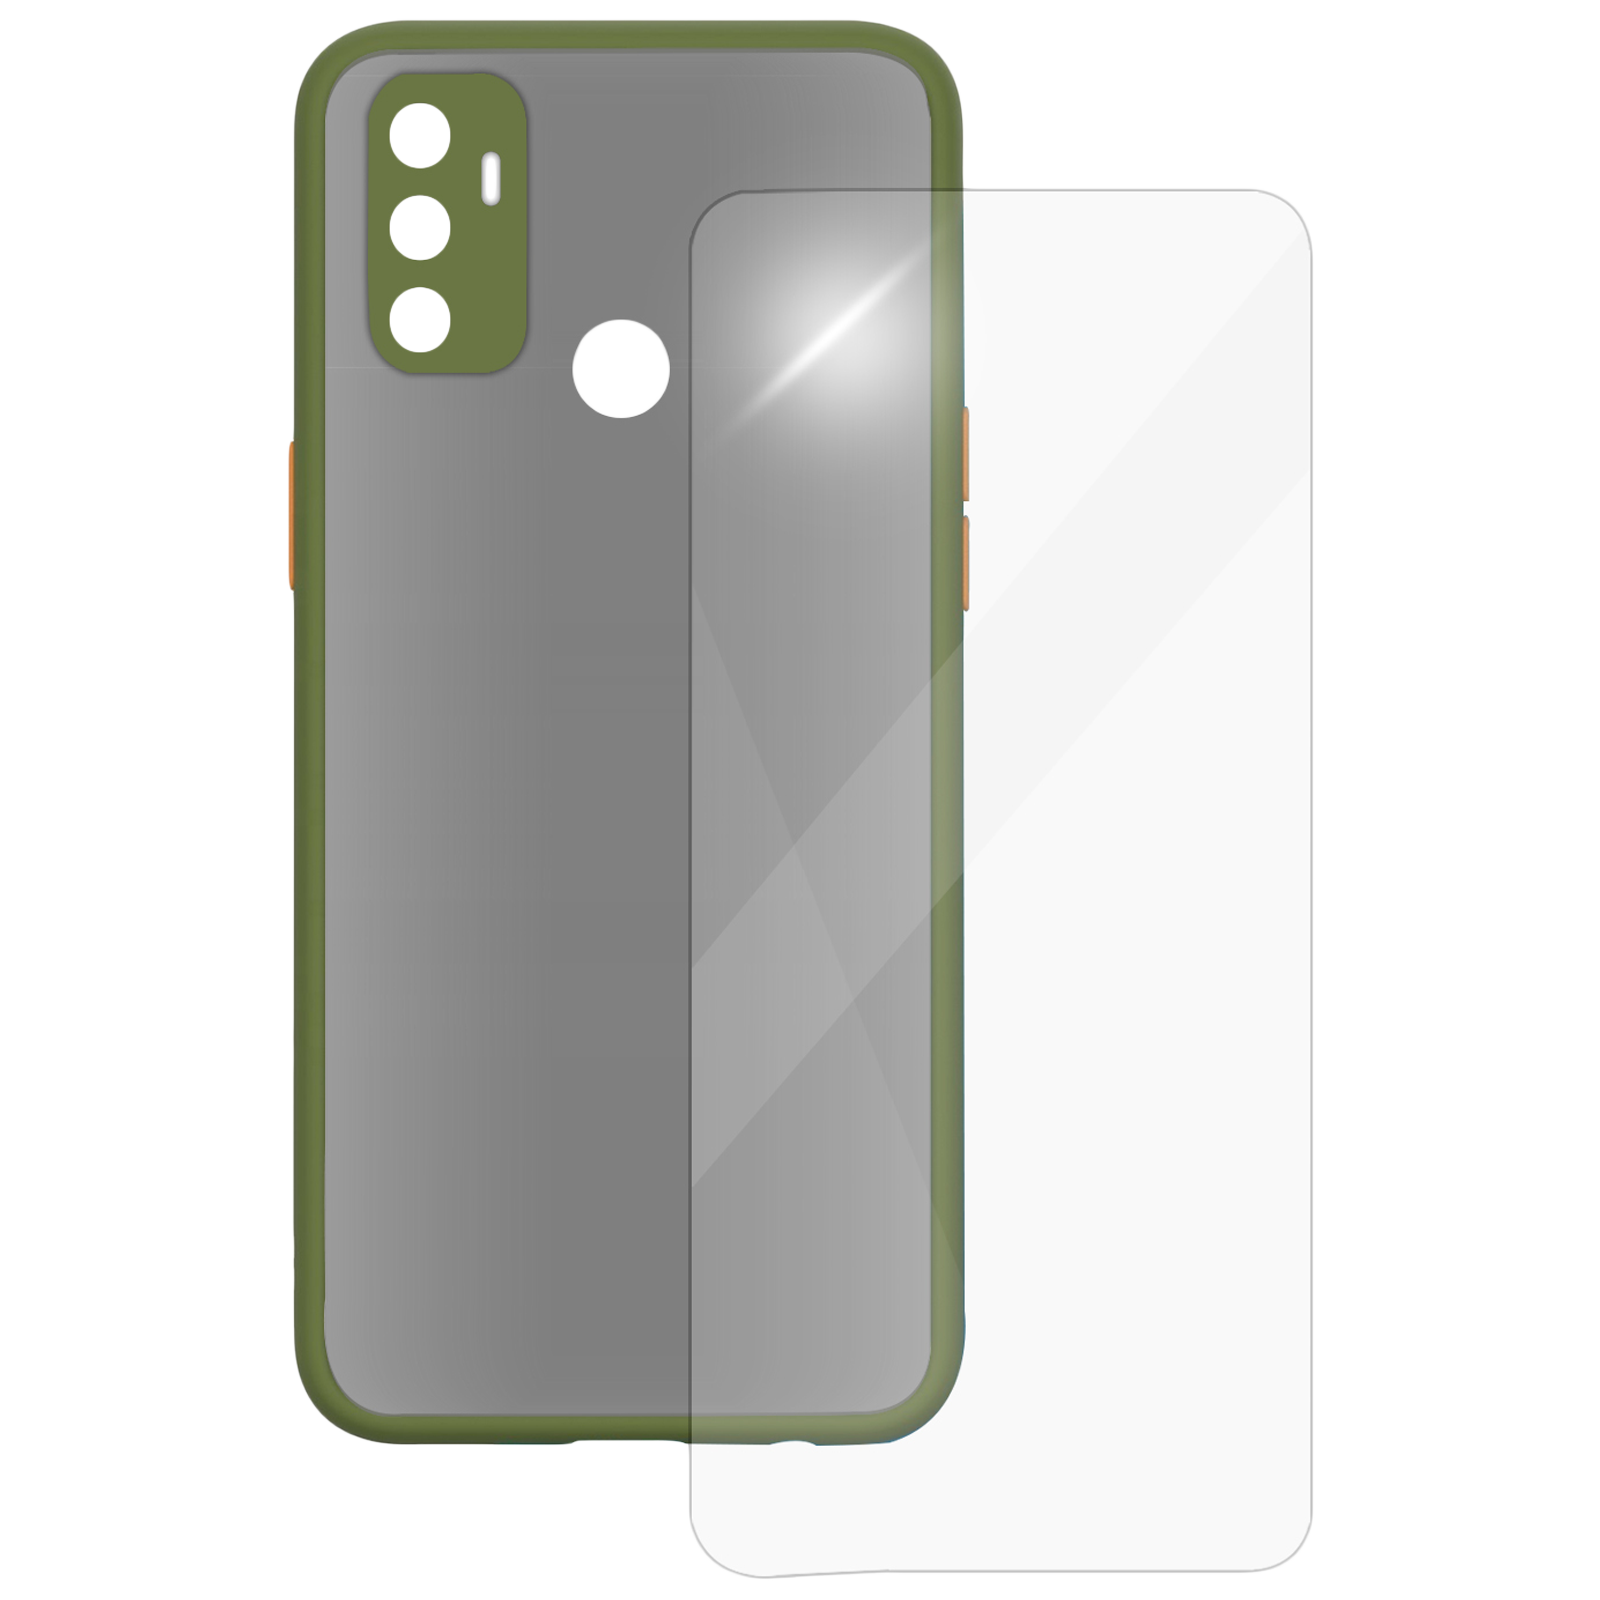 Arrow Camera Duplex Back Case and Screen Protector Bundle For Oppo A53 (Ultra Transparent Visibility, AR-962, Light Green)_1